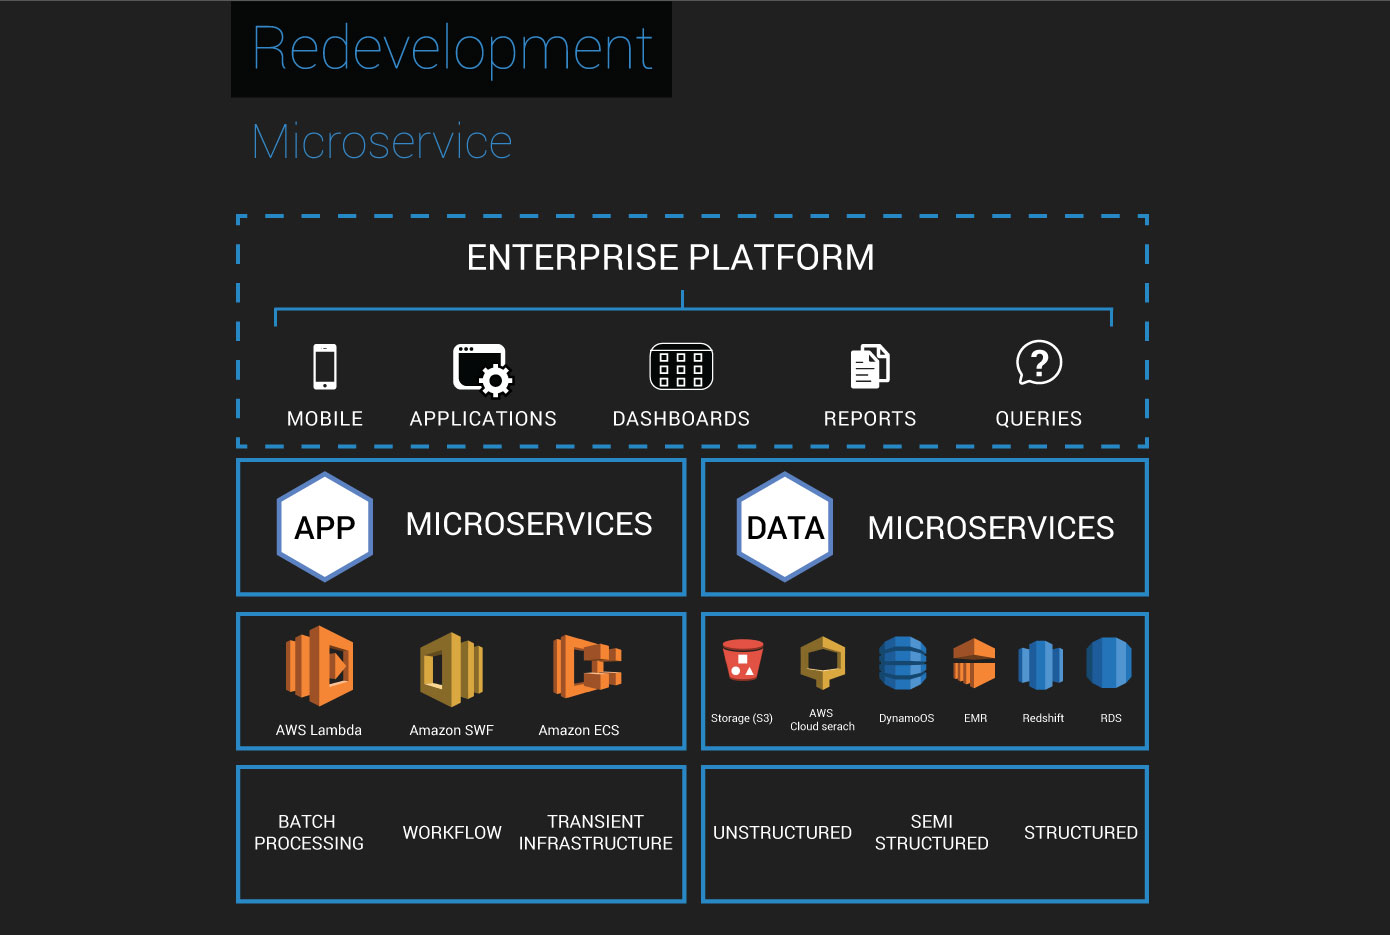 Redevelopment – Microservices Based App Development